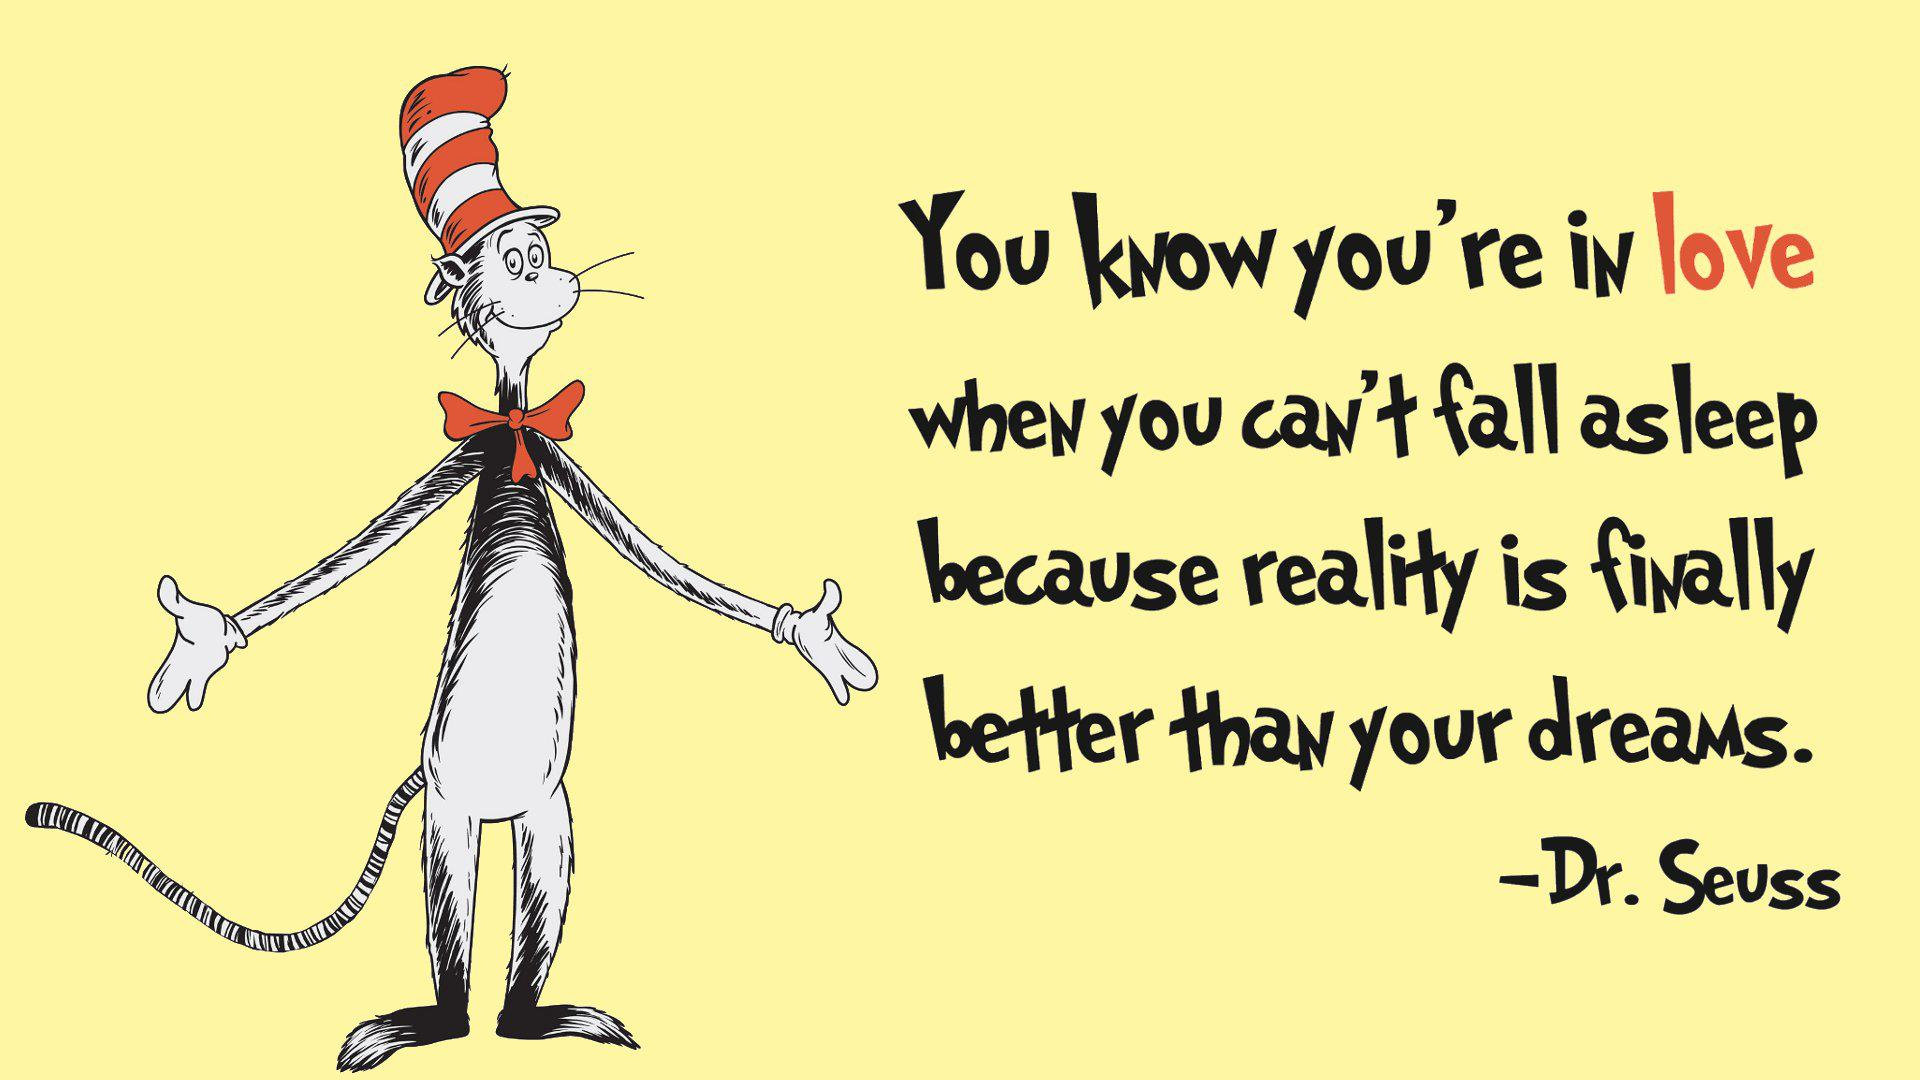 Love care Quotes Wallpaper : Mac OSxWallpapers: Dr Seuss Wallpaper